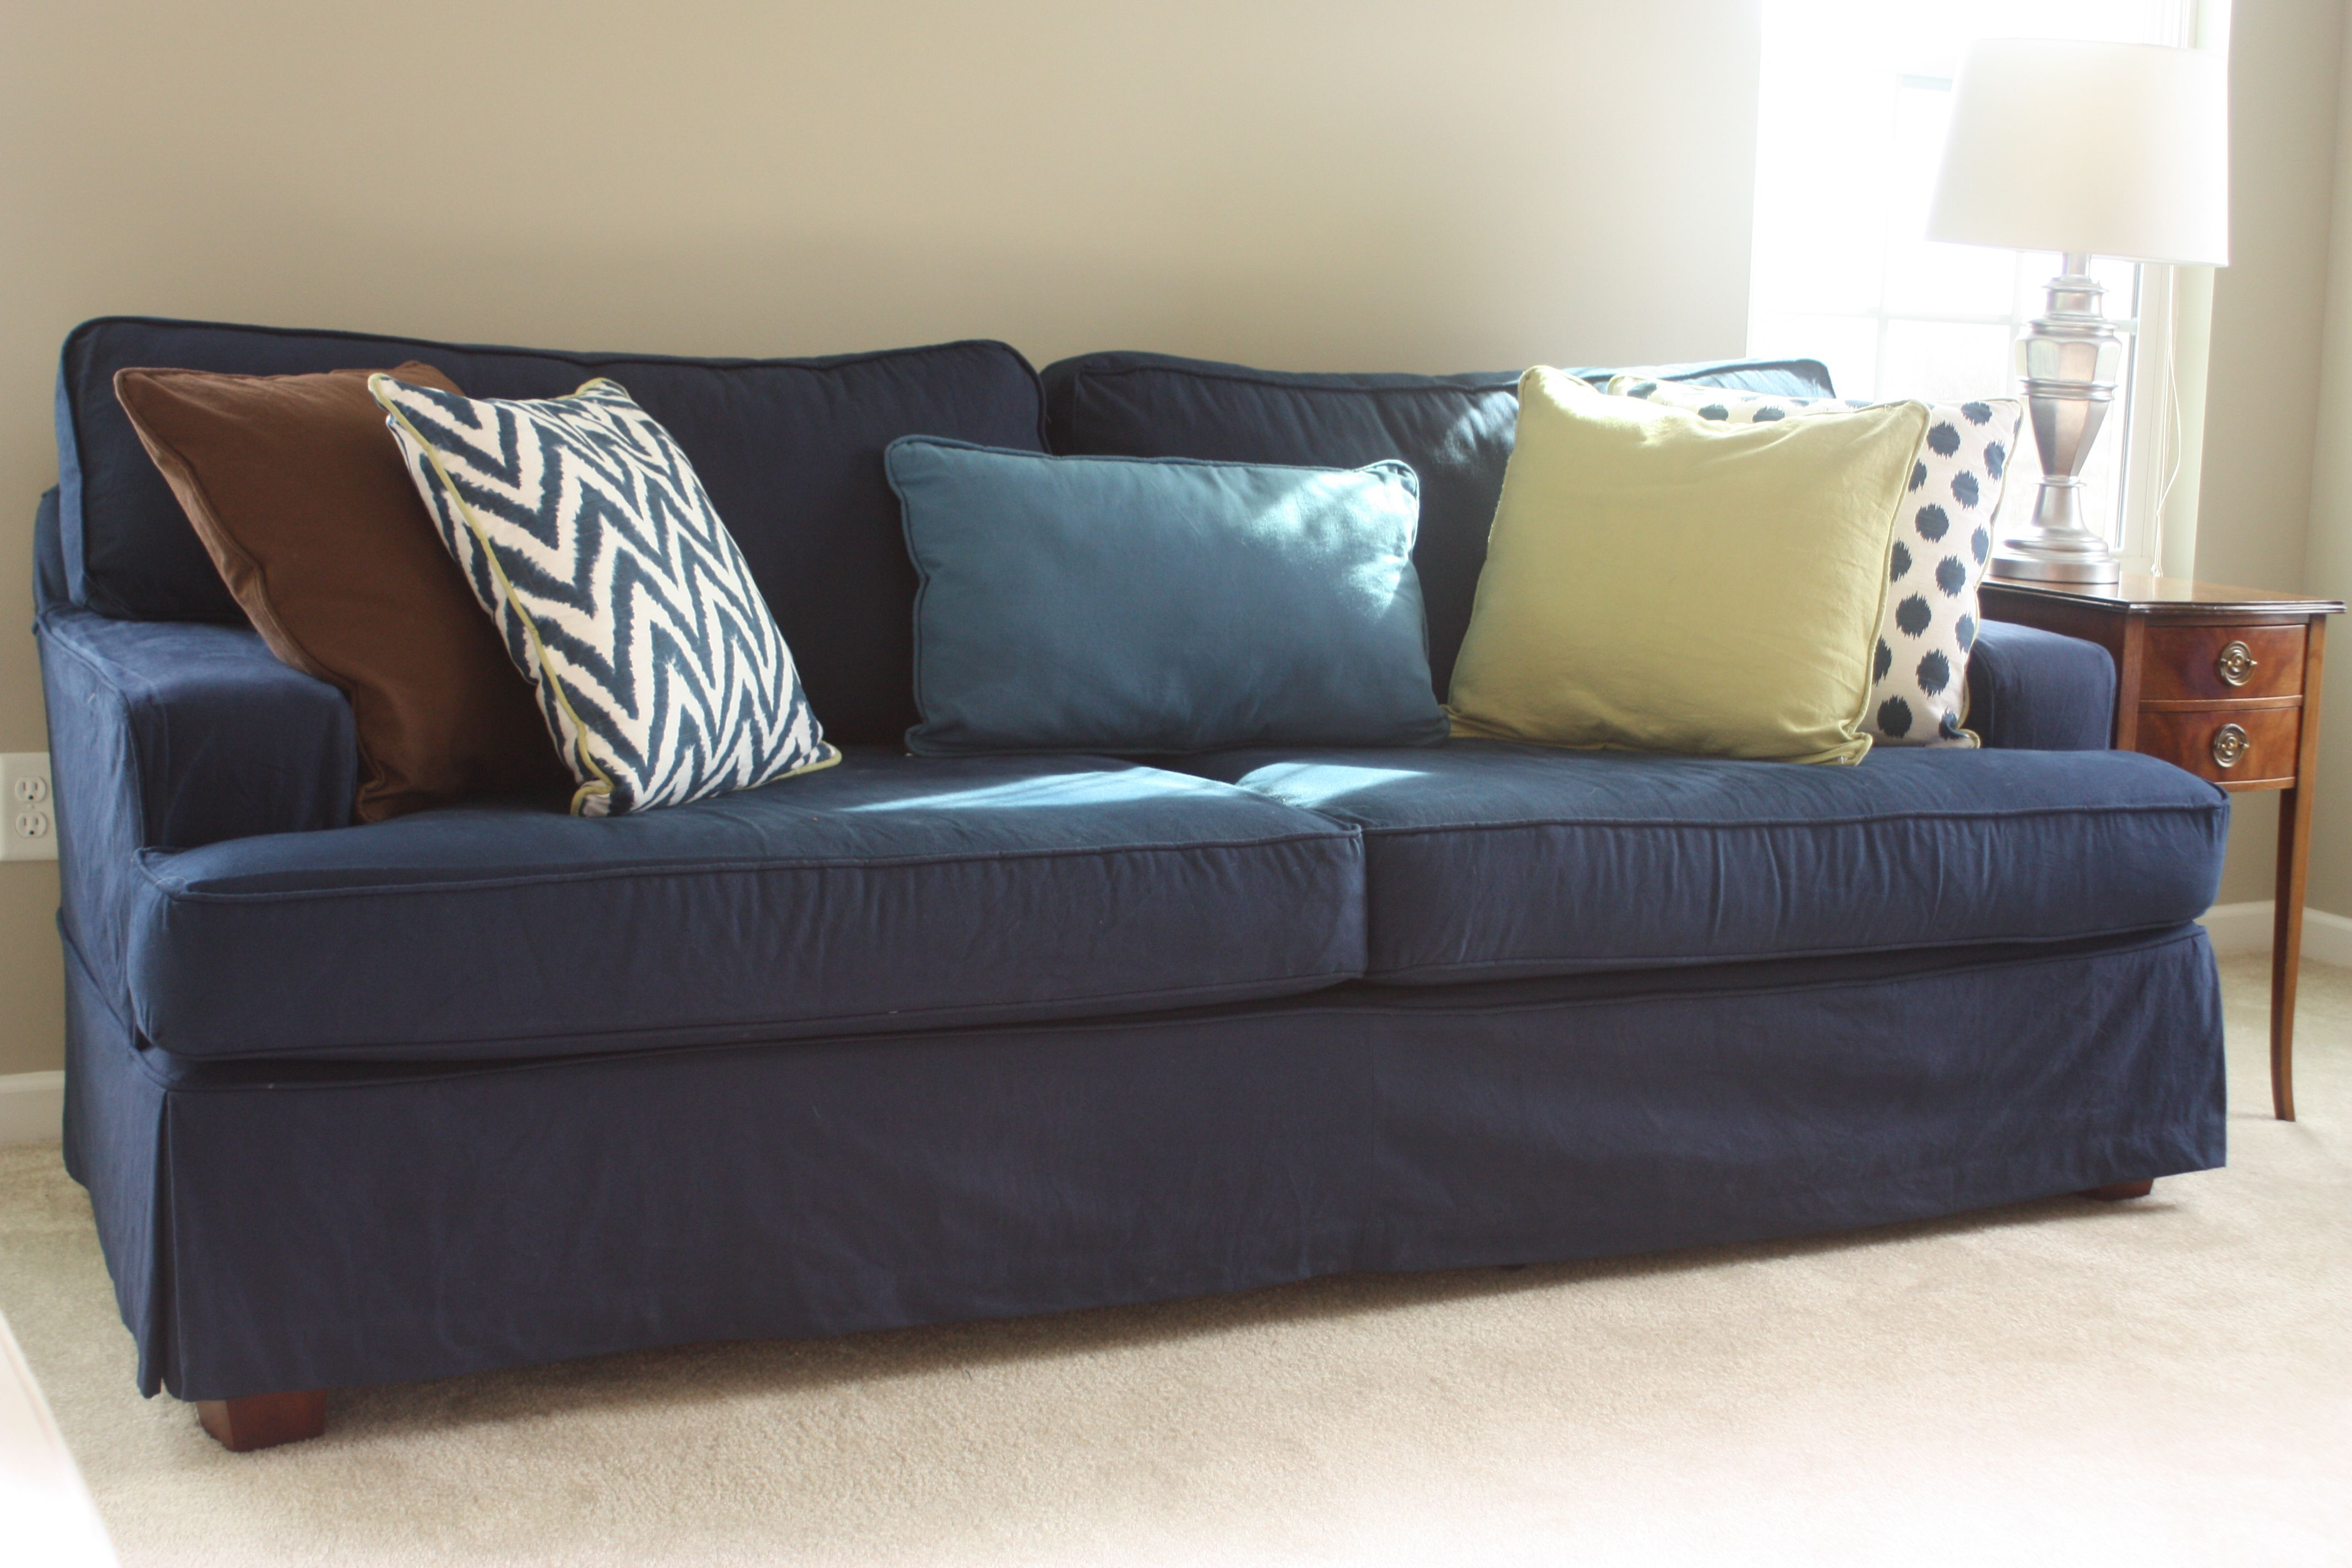 Quilted Embroidery Sectional Sofa Couch Slipcovers Furniture Protector Cotton Sofas At Big Lots Canvas Slipcover Sure Fit Home Decor